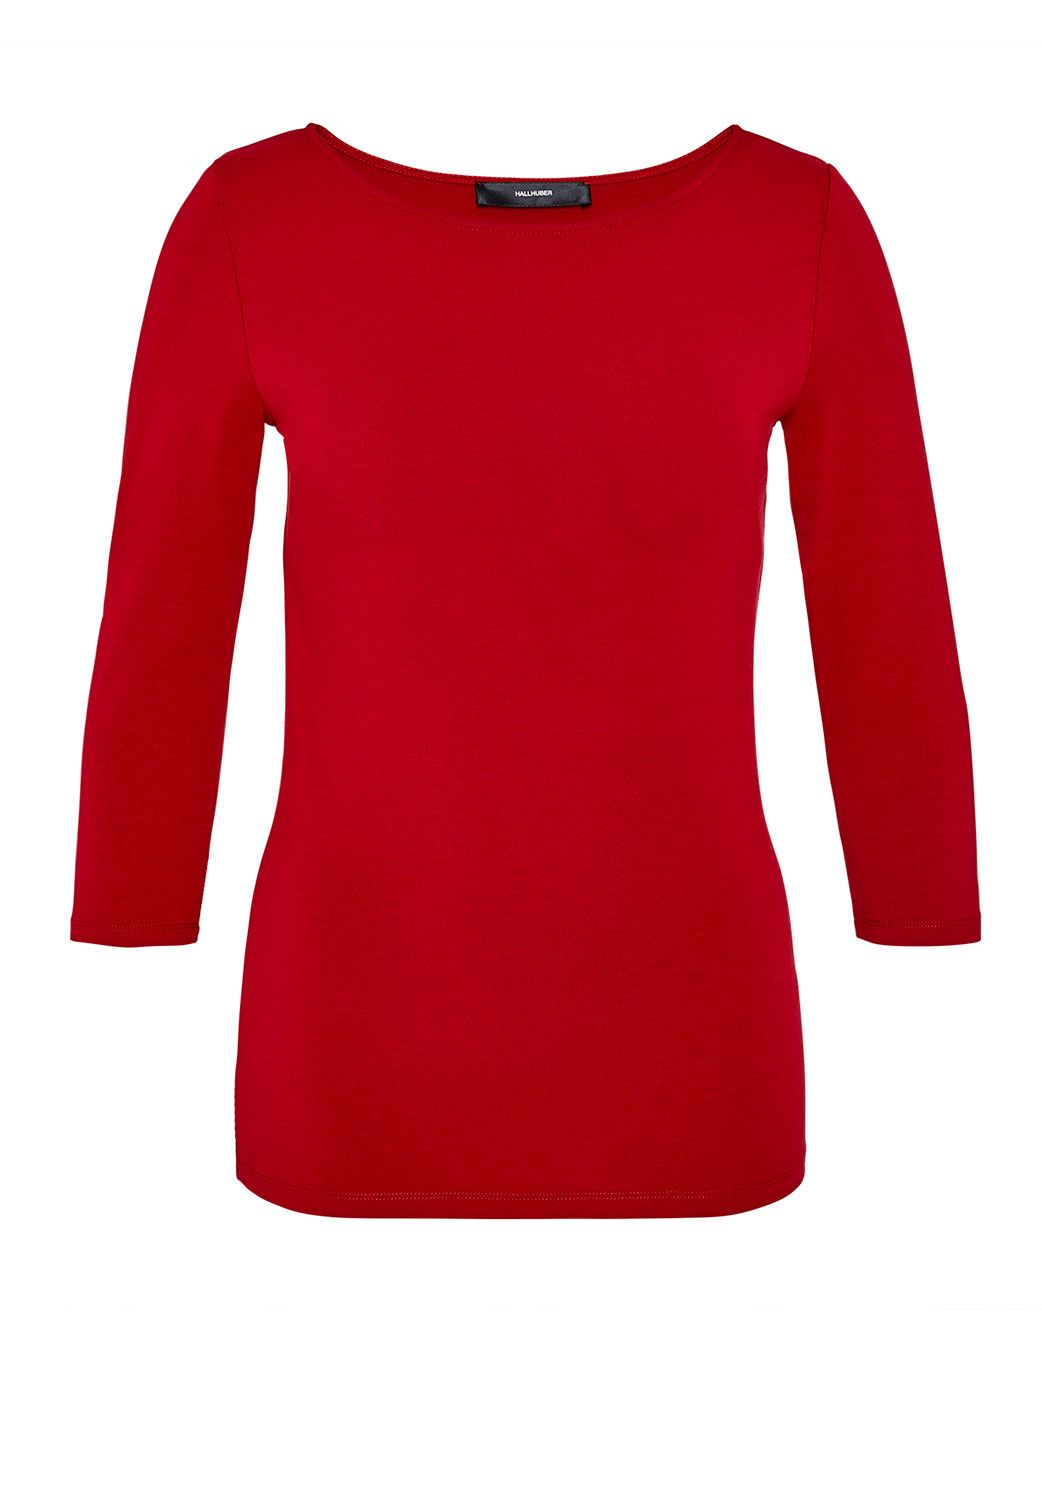 Hallhuber Boat Neck Top, Red